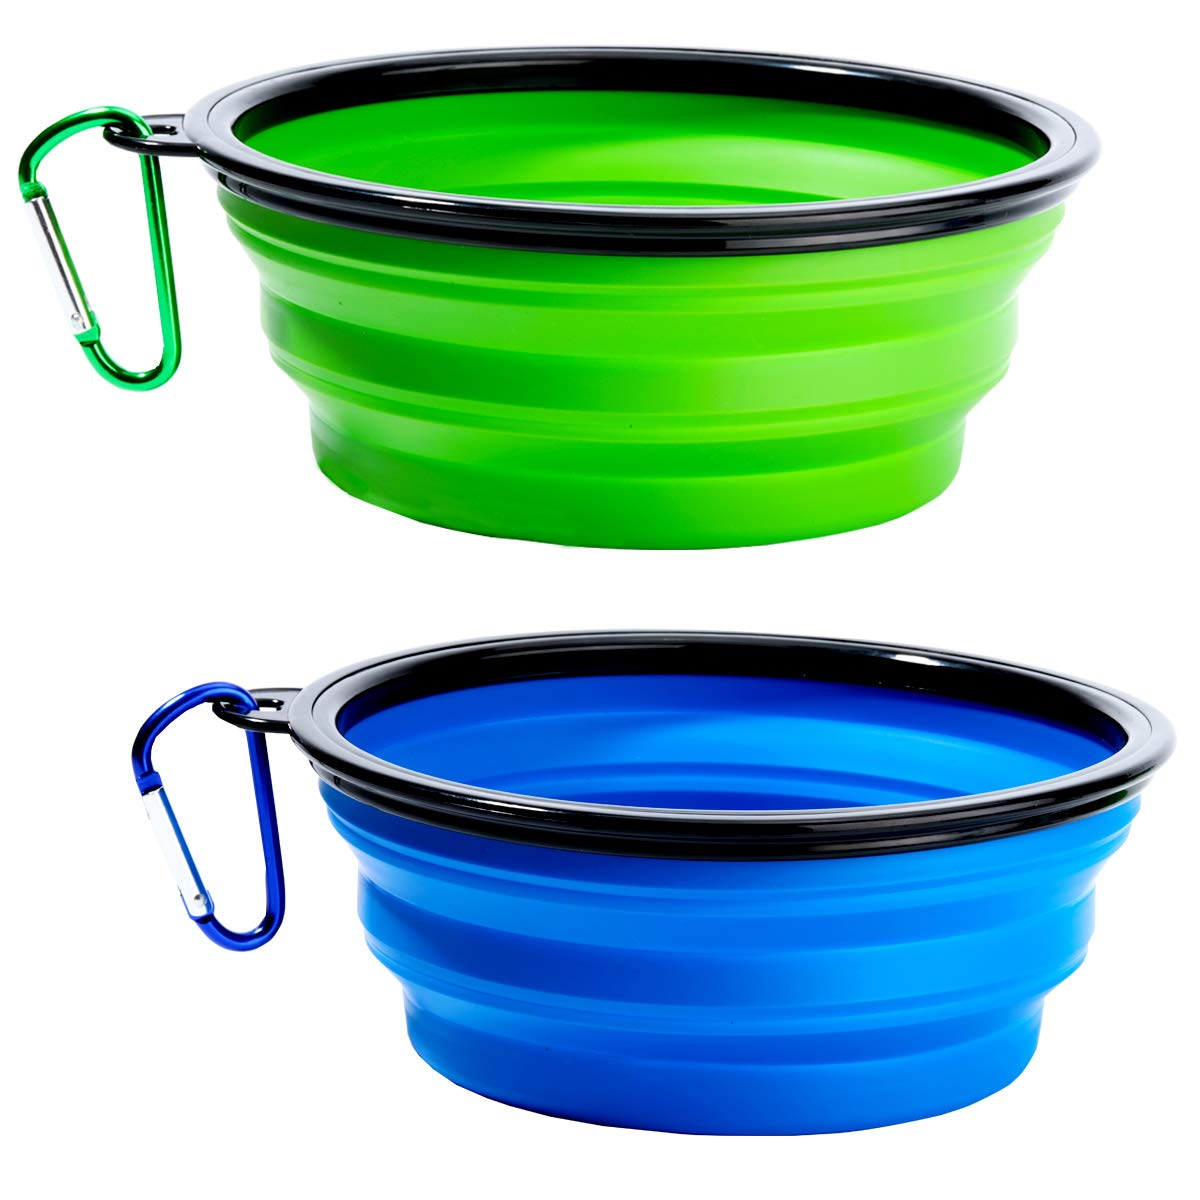 Collapsible Dog Bowl 2 Pack Collapsable Pet Water Bowls for Cats Dogs Food Grade Silicone Dog Dishes Portable Pet Feeding Watering Dish for Walking Parking Traveling Include 2 Carabiners